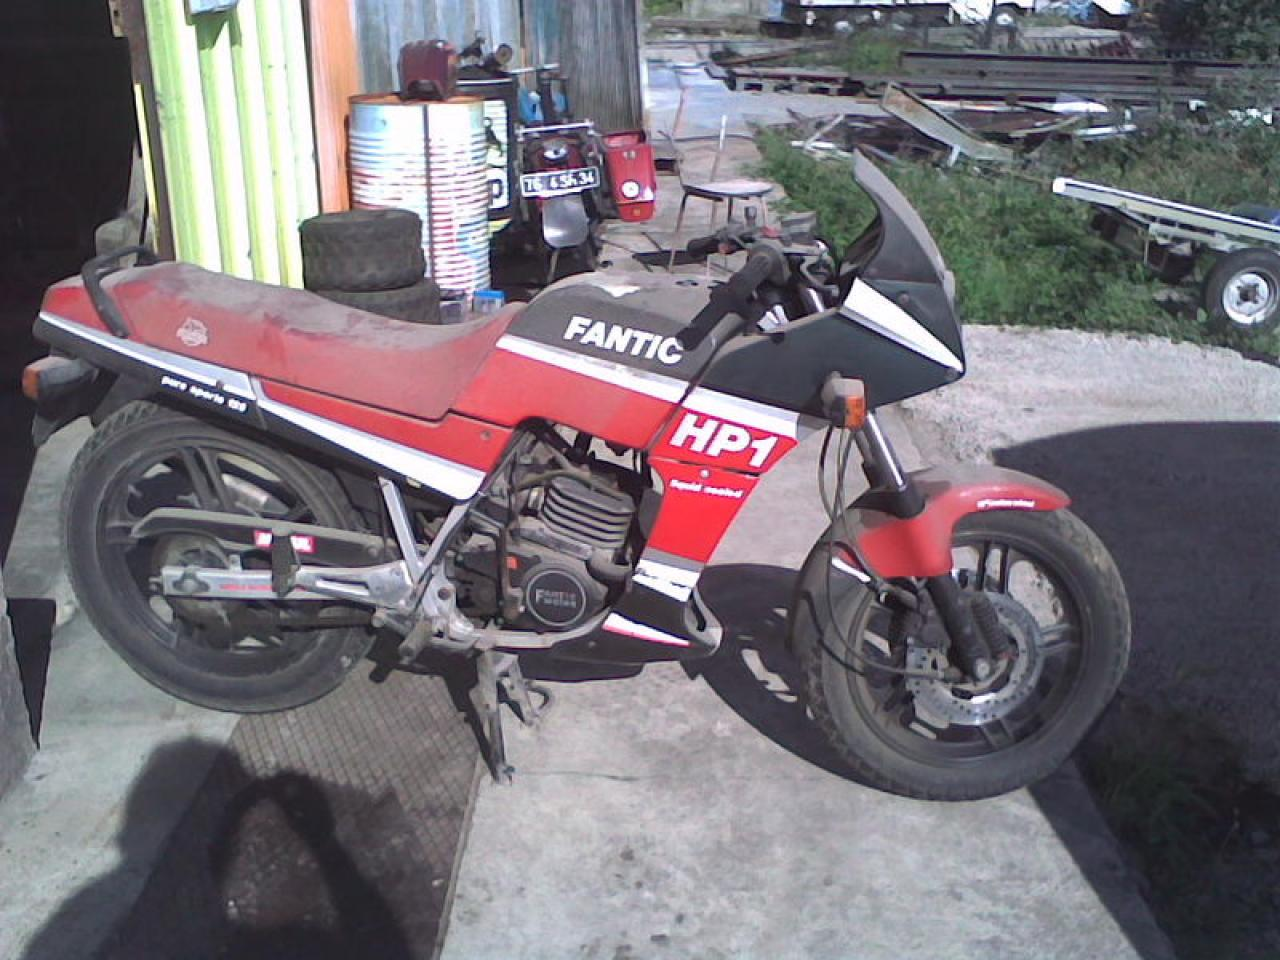 Fantic 125 Sport HP 1 1990 images #72385